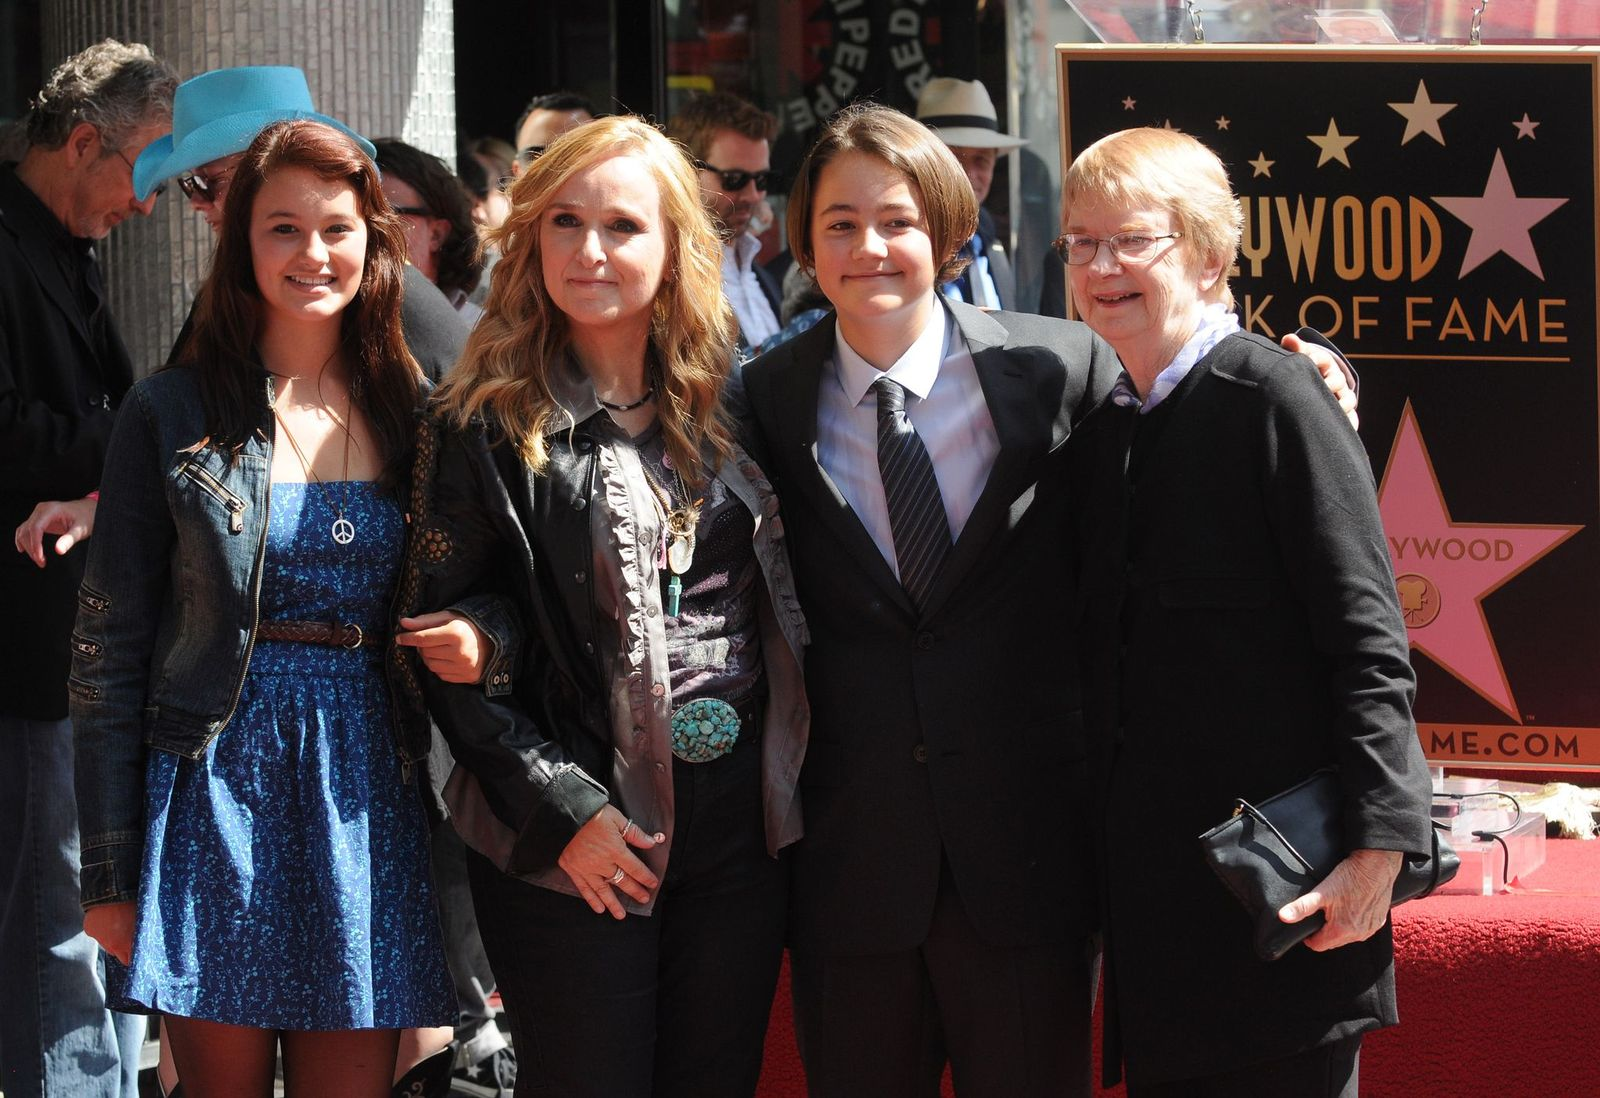 Bailey Cypher, Melissa Etheridge, Beckett Cypher, and Elizabeth Williamson at Etheridge's Hollywood Walk of Fame Induction Ceremony on September 27, 2011, in Hollywood, California | Photo: Duffy-Marie Arnoult/WireImage/Getty Images